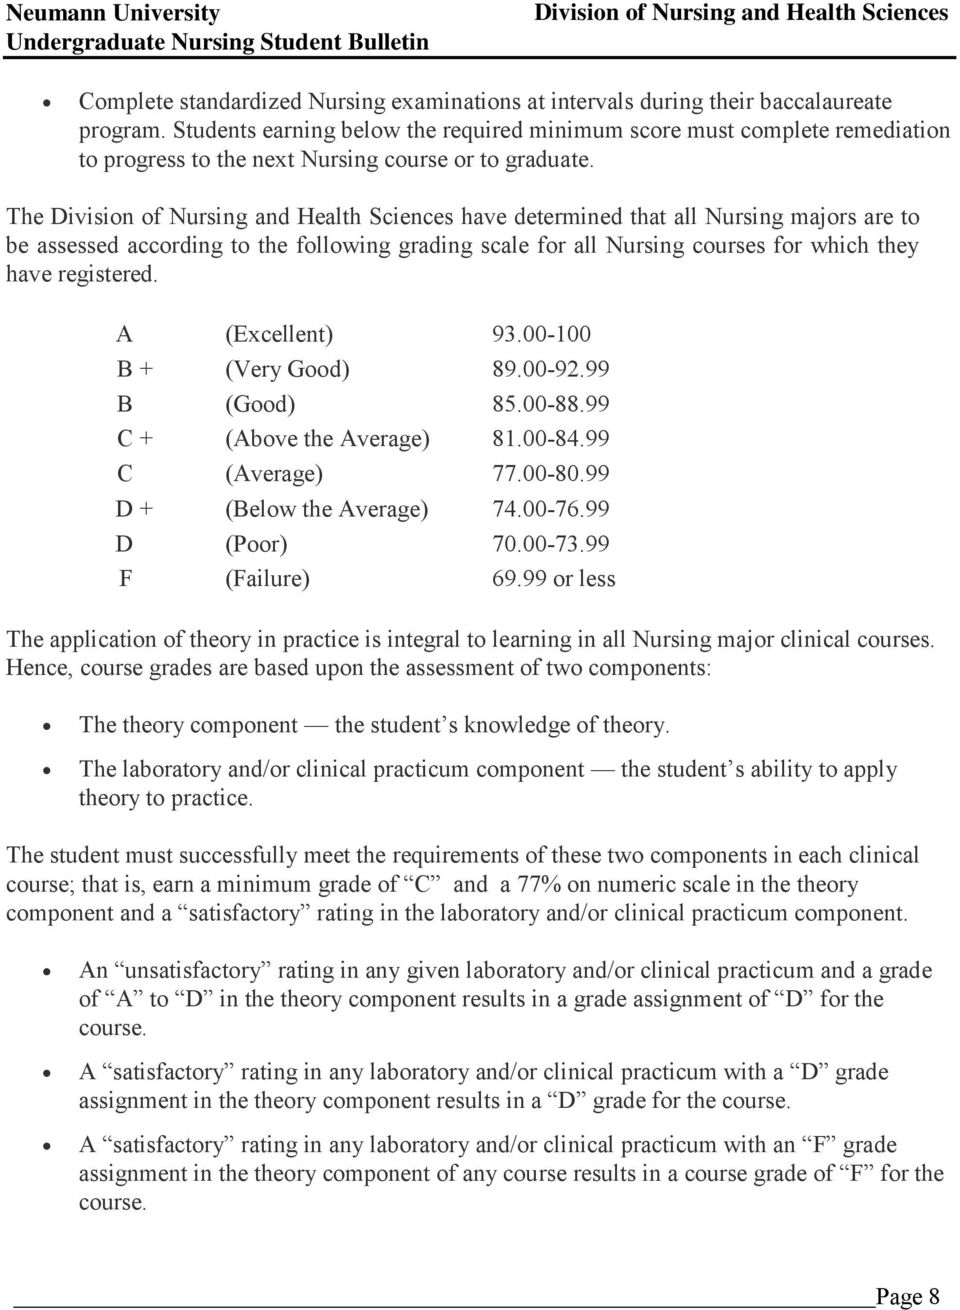 The have determined that all Nursing majors are to be assessed according to the following grading scale for all Nursing courses for which they have registered. A (Excellent) 93.